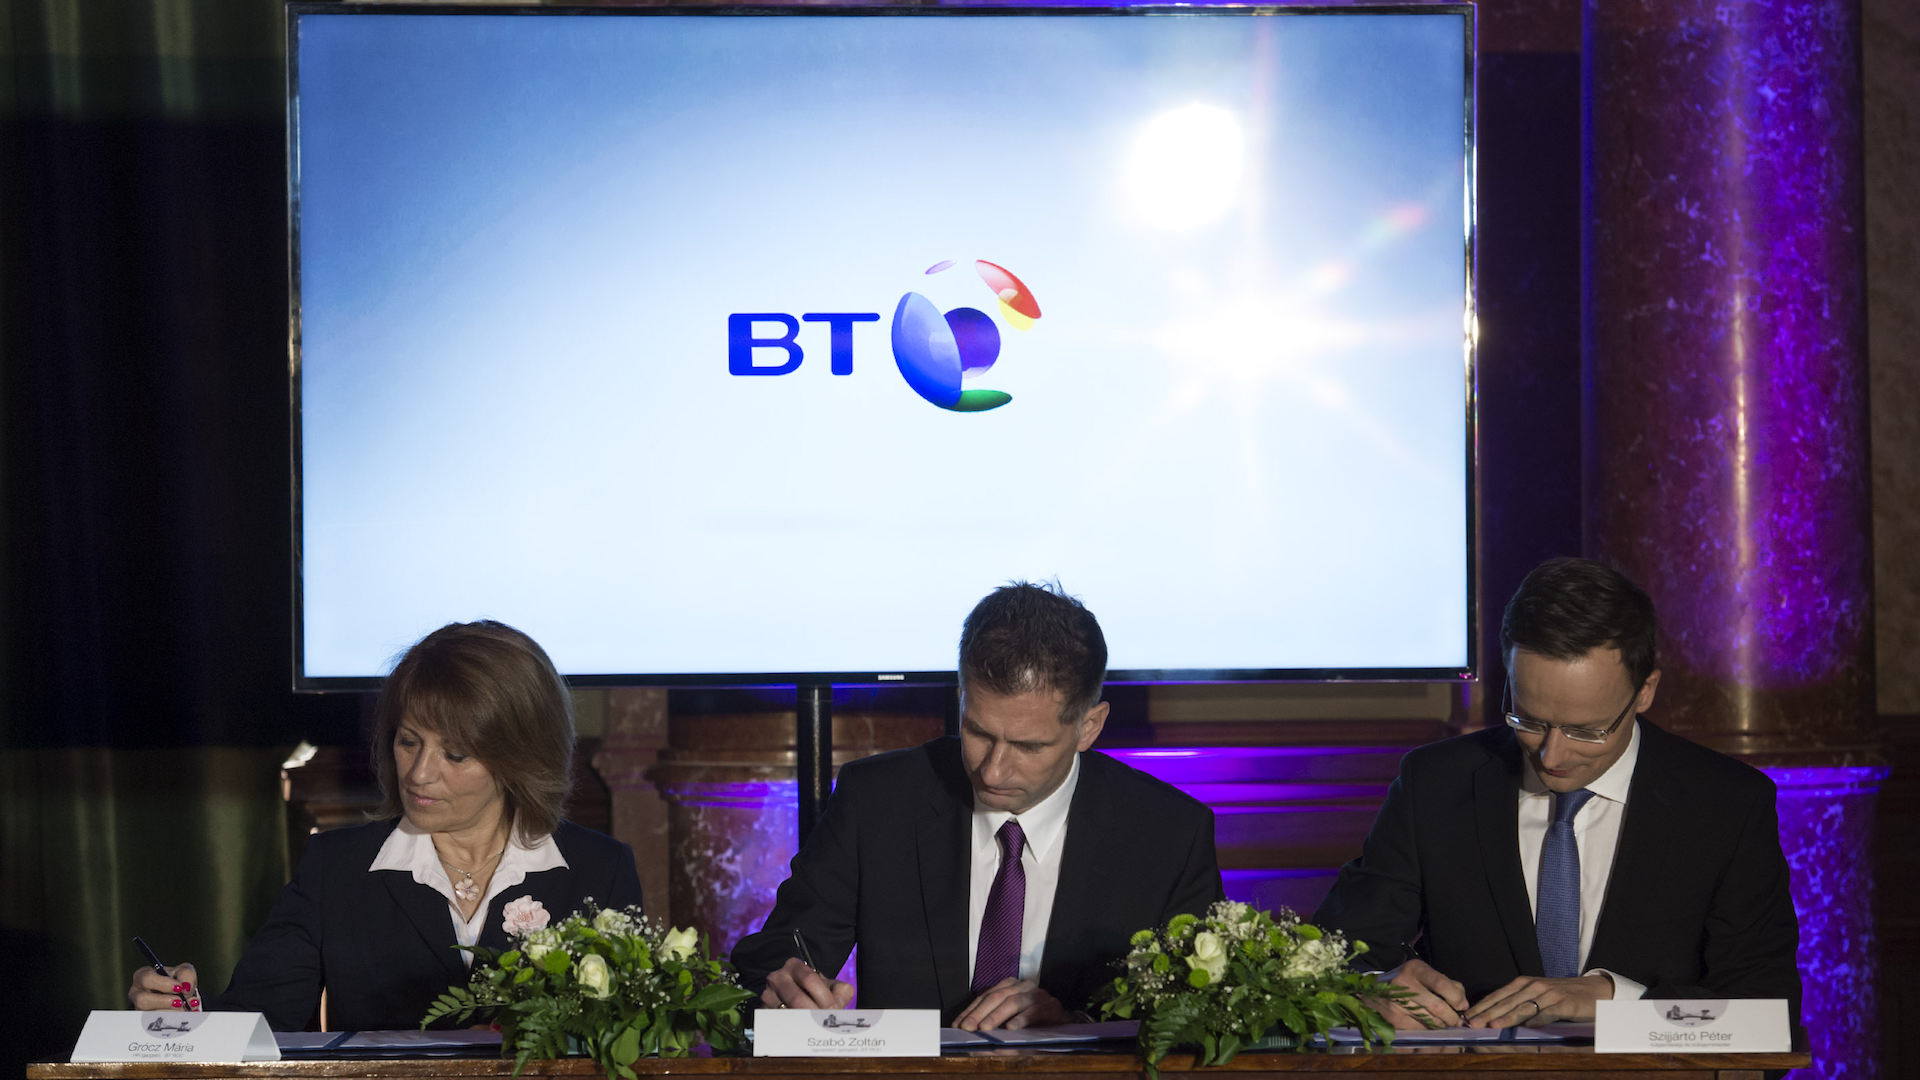 The Hungarian Government and BT (British Telecom), one of the world's leading companies offering communications services and solutions signed a strategic partnership agreement, Szijjárto Péter KKM Szabó Zoltán Grócz Mária BT